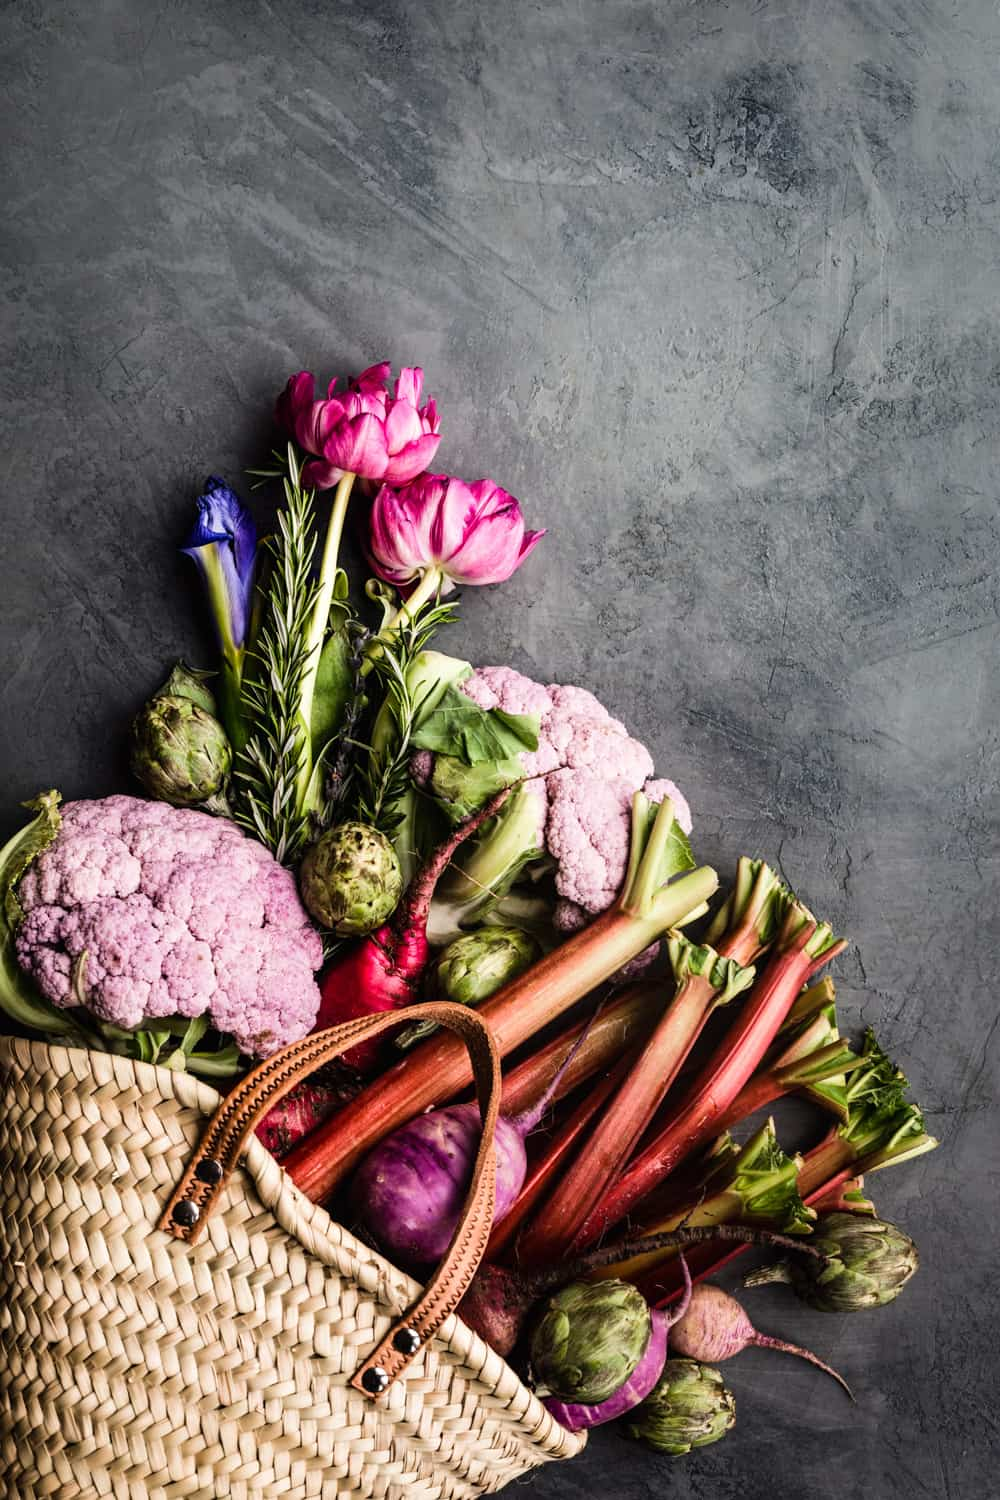 basket filled with farmers market produce; rhubarb, cauliflower, radishes, artichokes, flowers and rosemary.